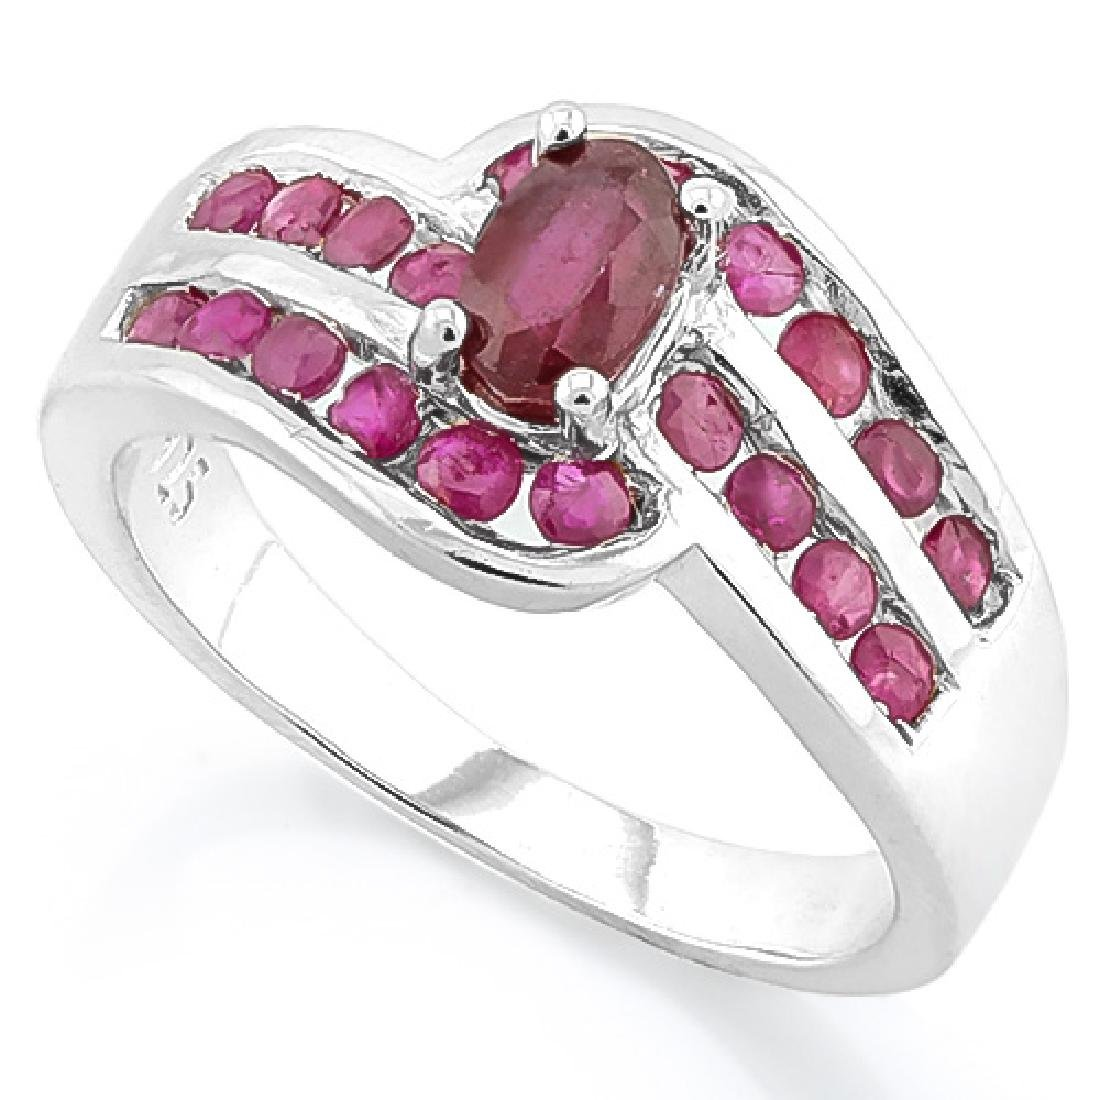 PRETTY 2CT AFRICAN RUBY DECO SET STERLING RING